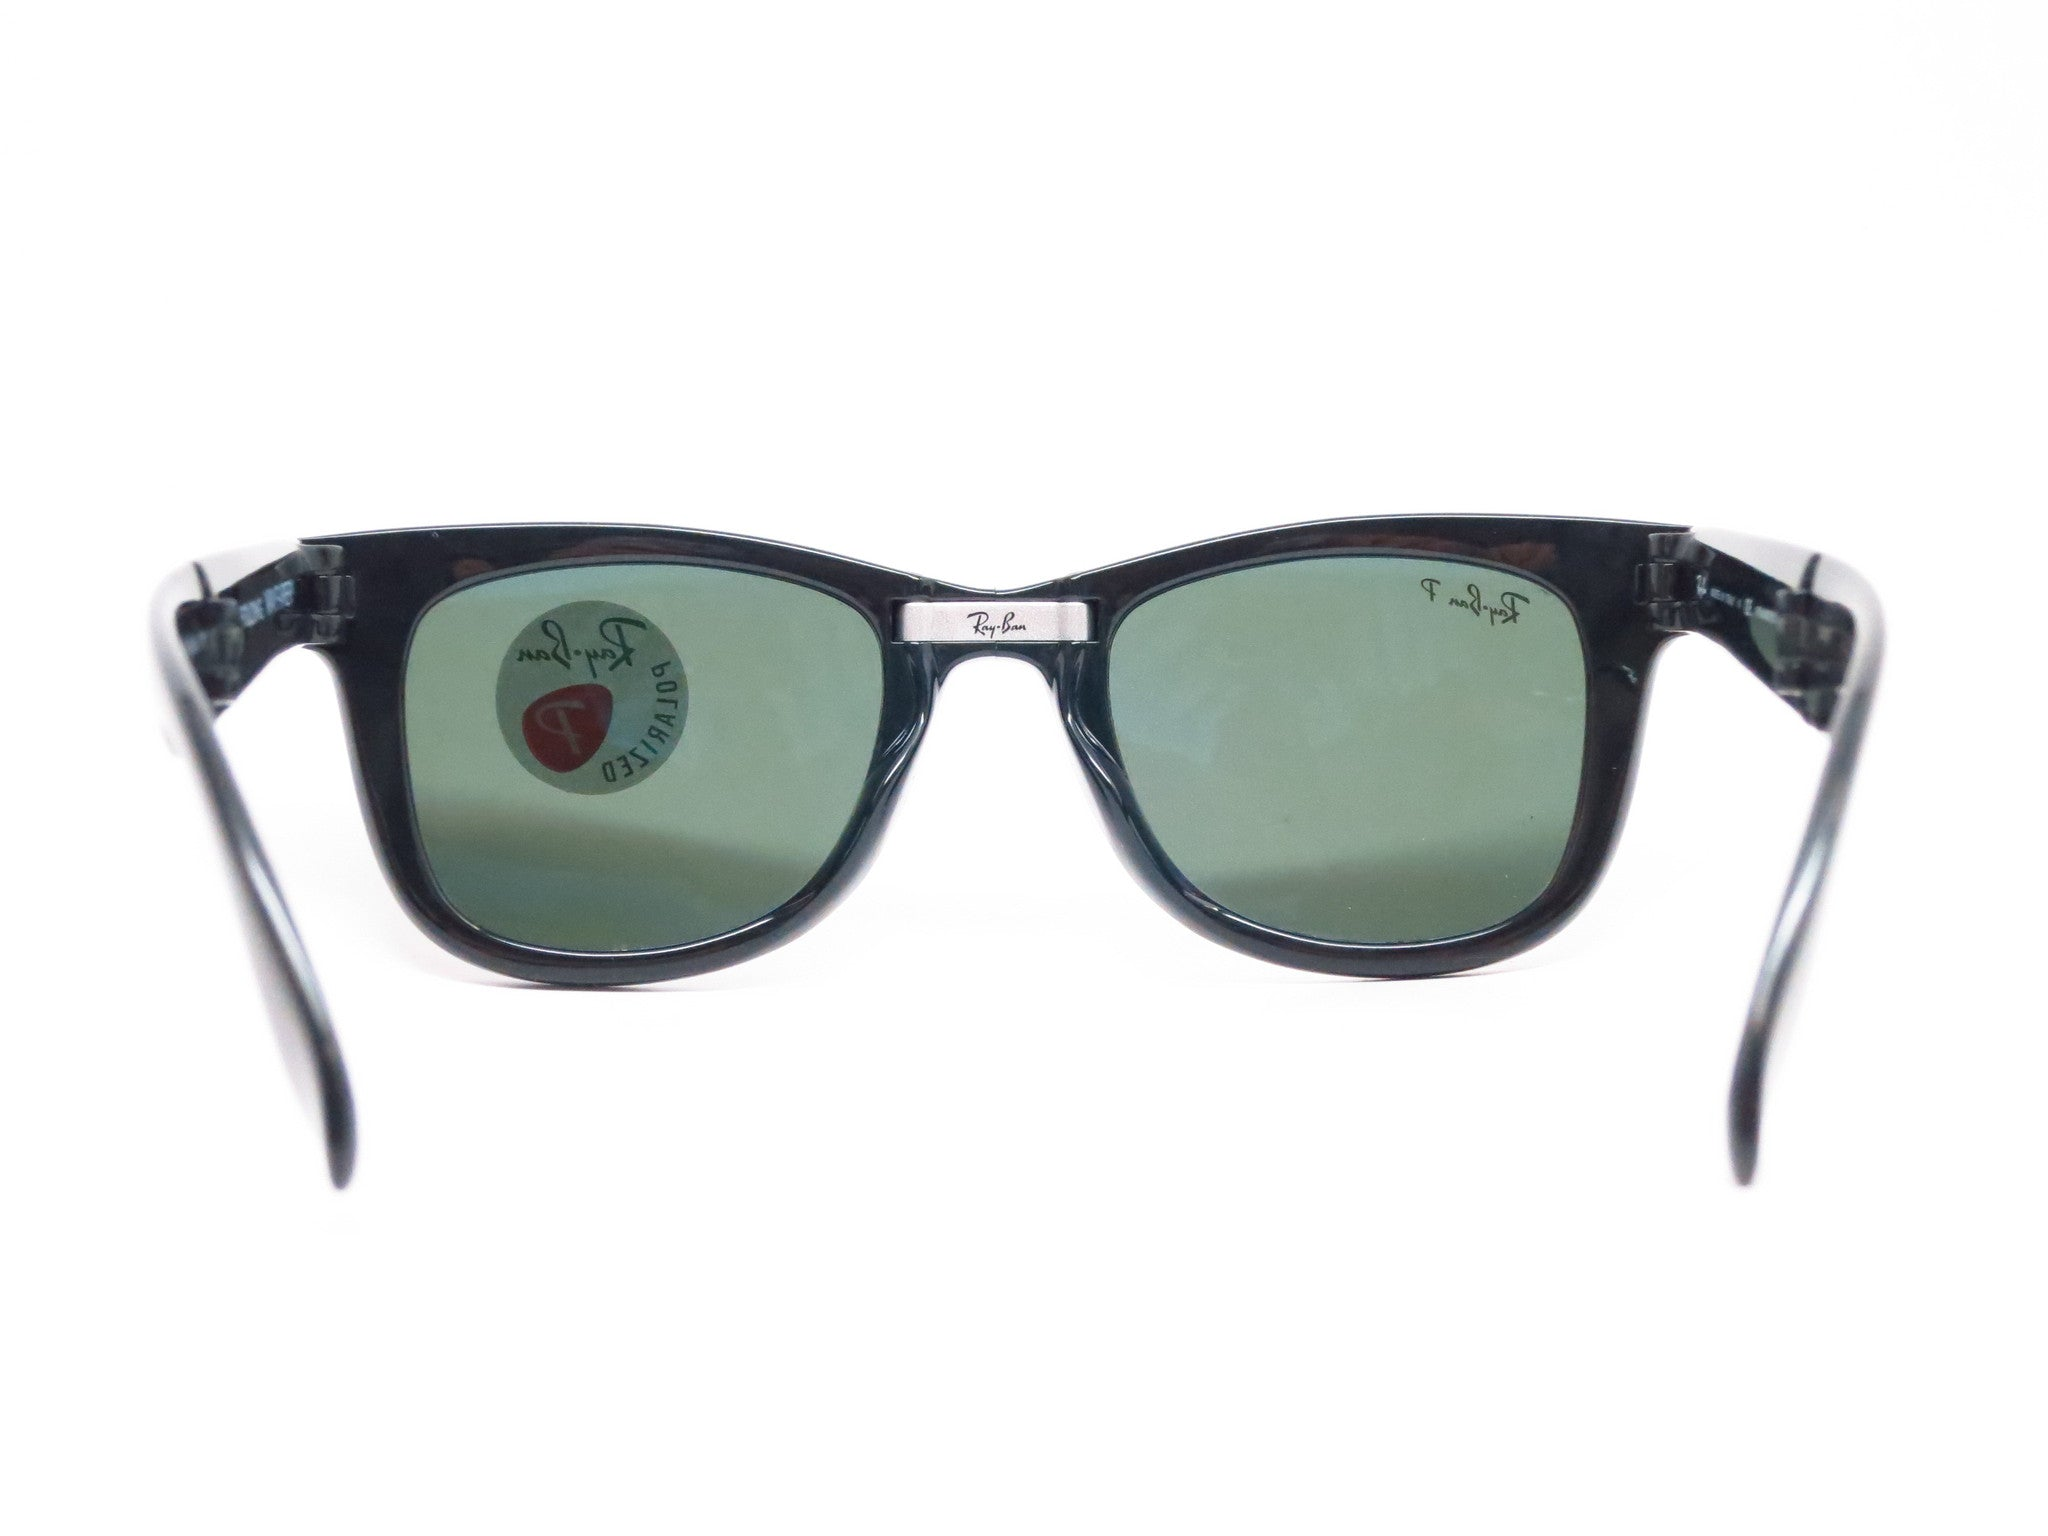 67b929b11d Ray-Ban RB 4105 Folding Wayfarer 601 58 Black Polarized Sunglasses - Eye  Heart